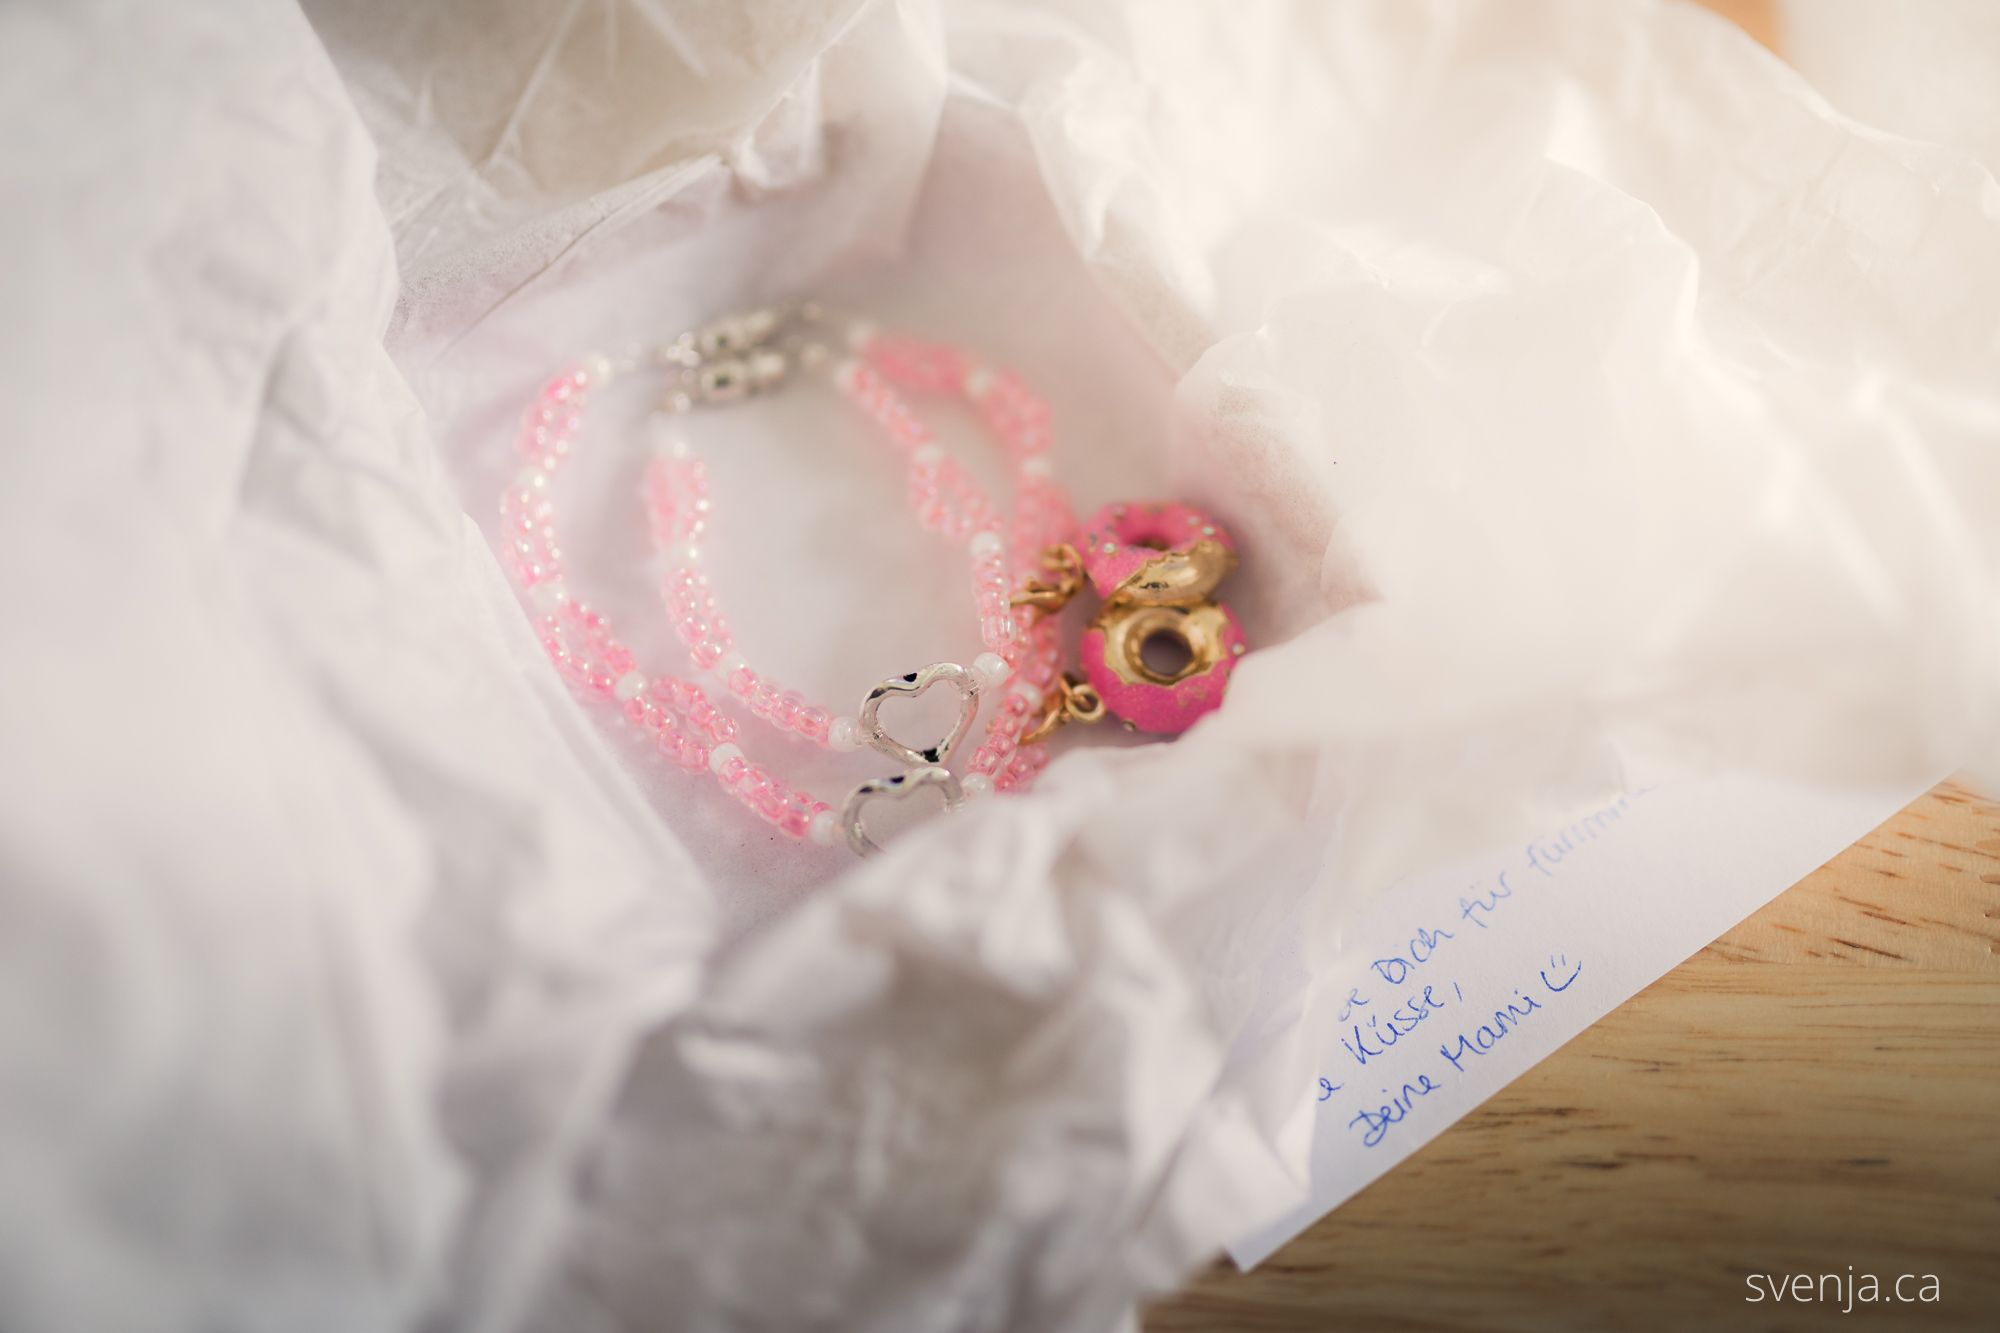 two pink bracelets lay in an opened box